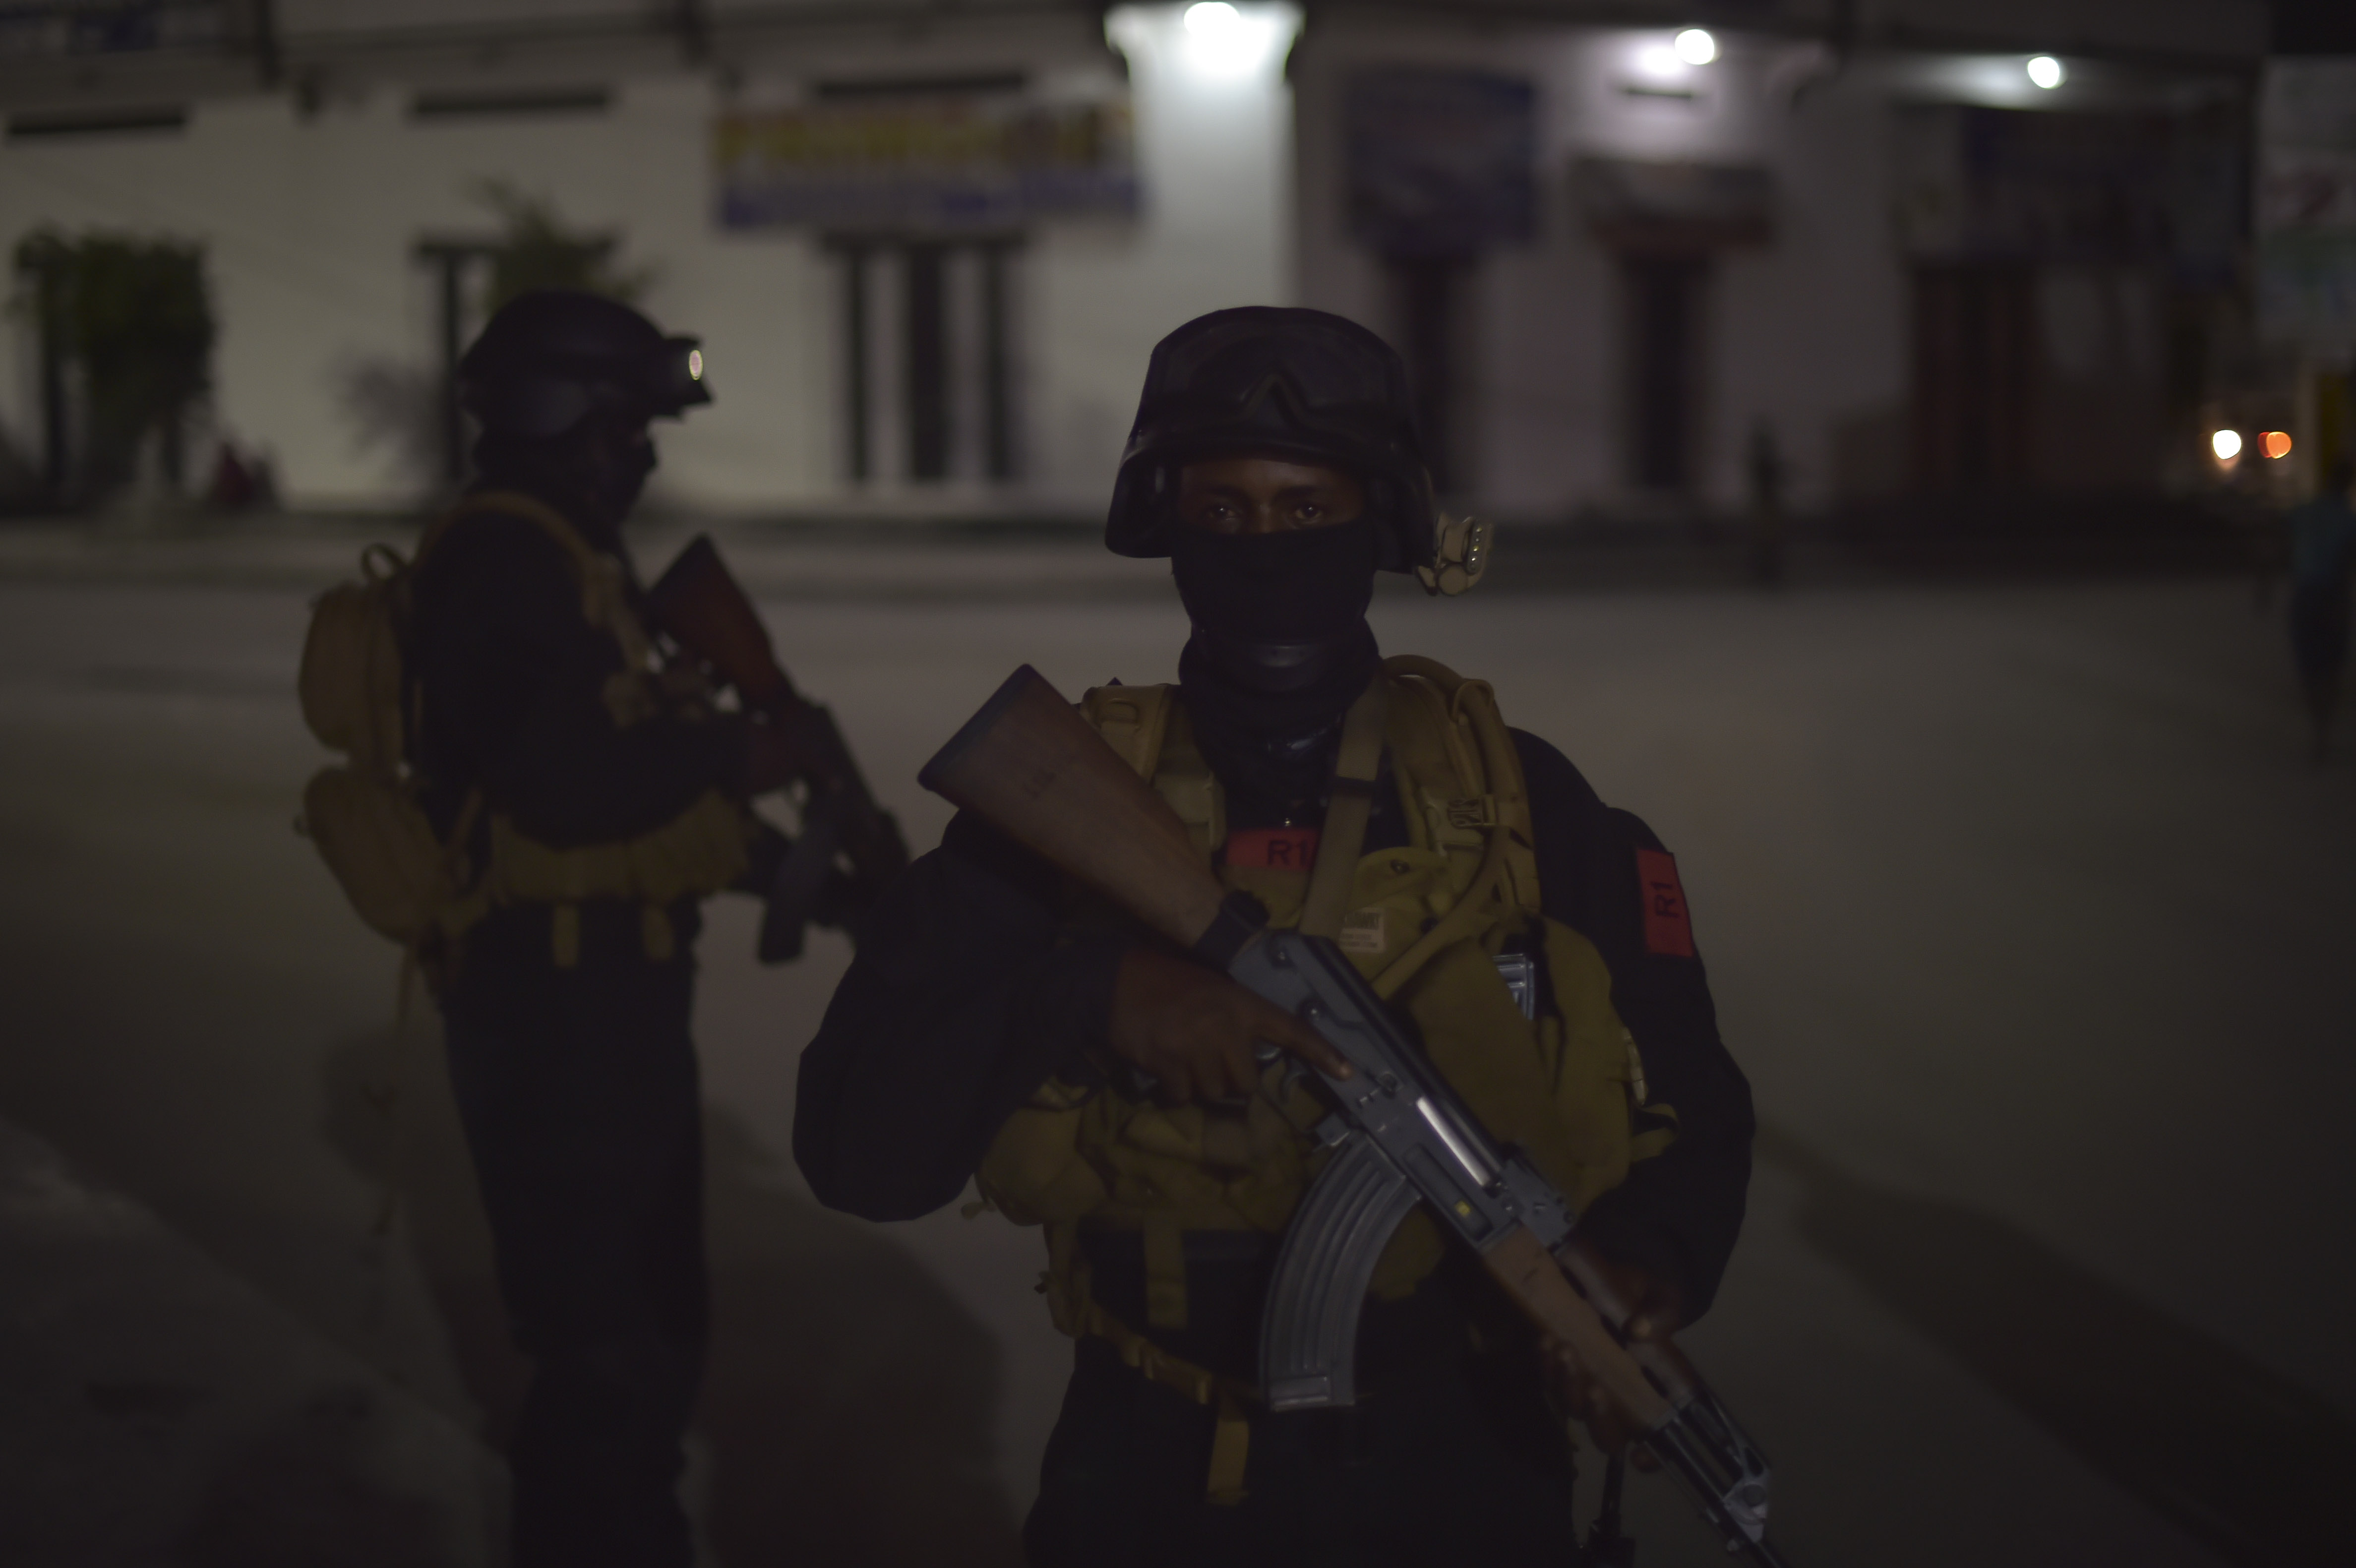 Somali National Army special forces members patrolling in the streets of Mogadishu